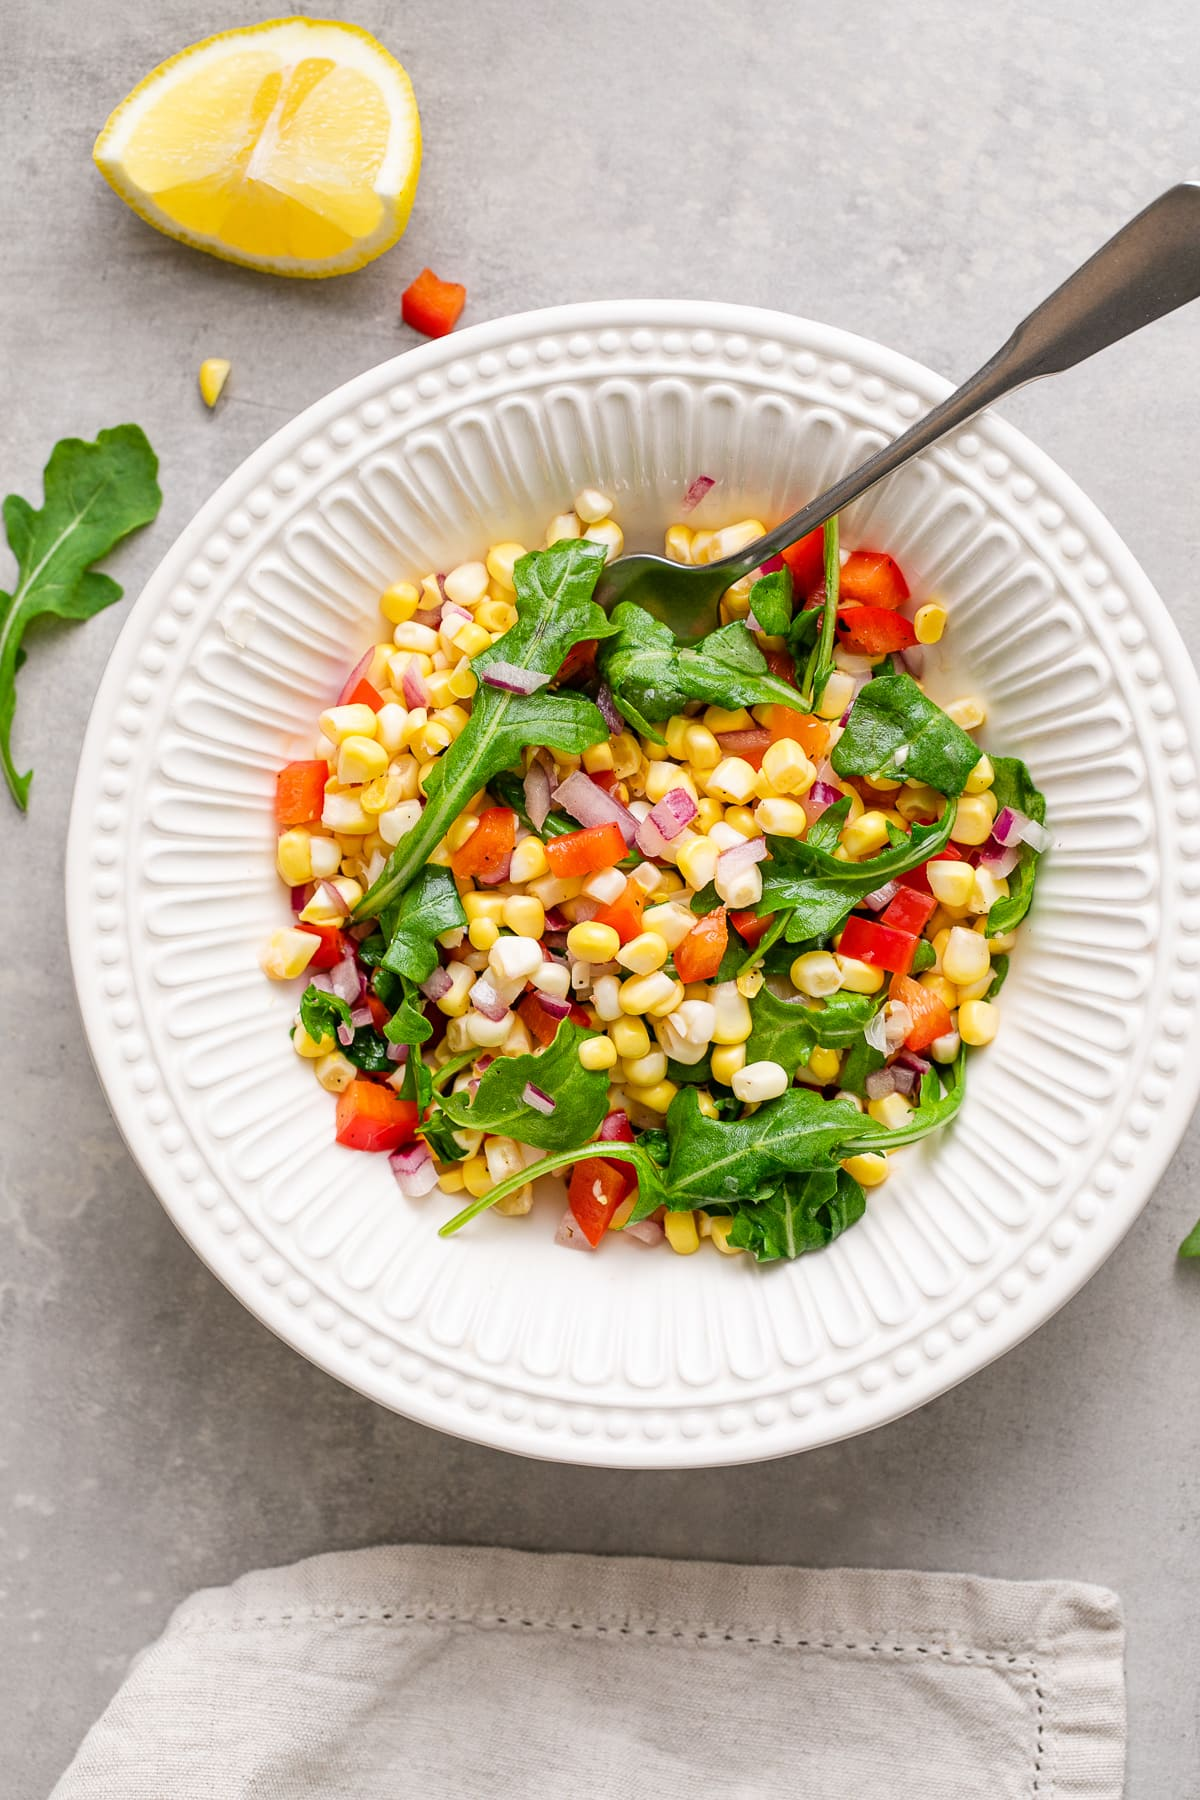 top down view of bowl with serving of corn arugula salad with items surrounding.